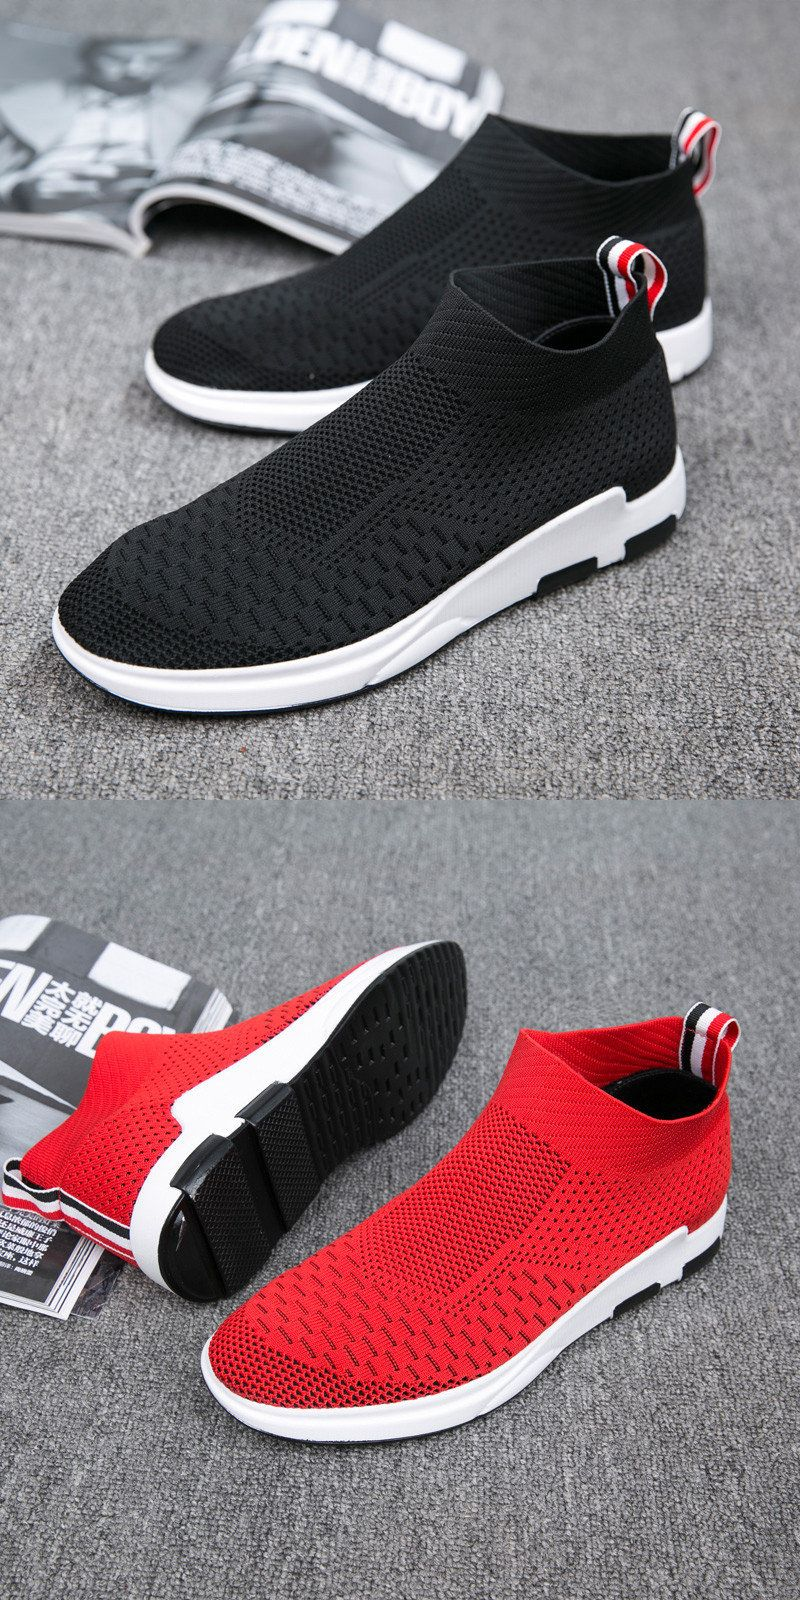 Men's Shoes New Fashion Casual Mens Shoes Slip On Knitted Stretch Fabric Sock Booties Extended Sole Platforms Trainers Mens Sneaker Formal Shoes